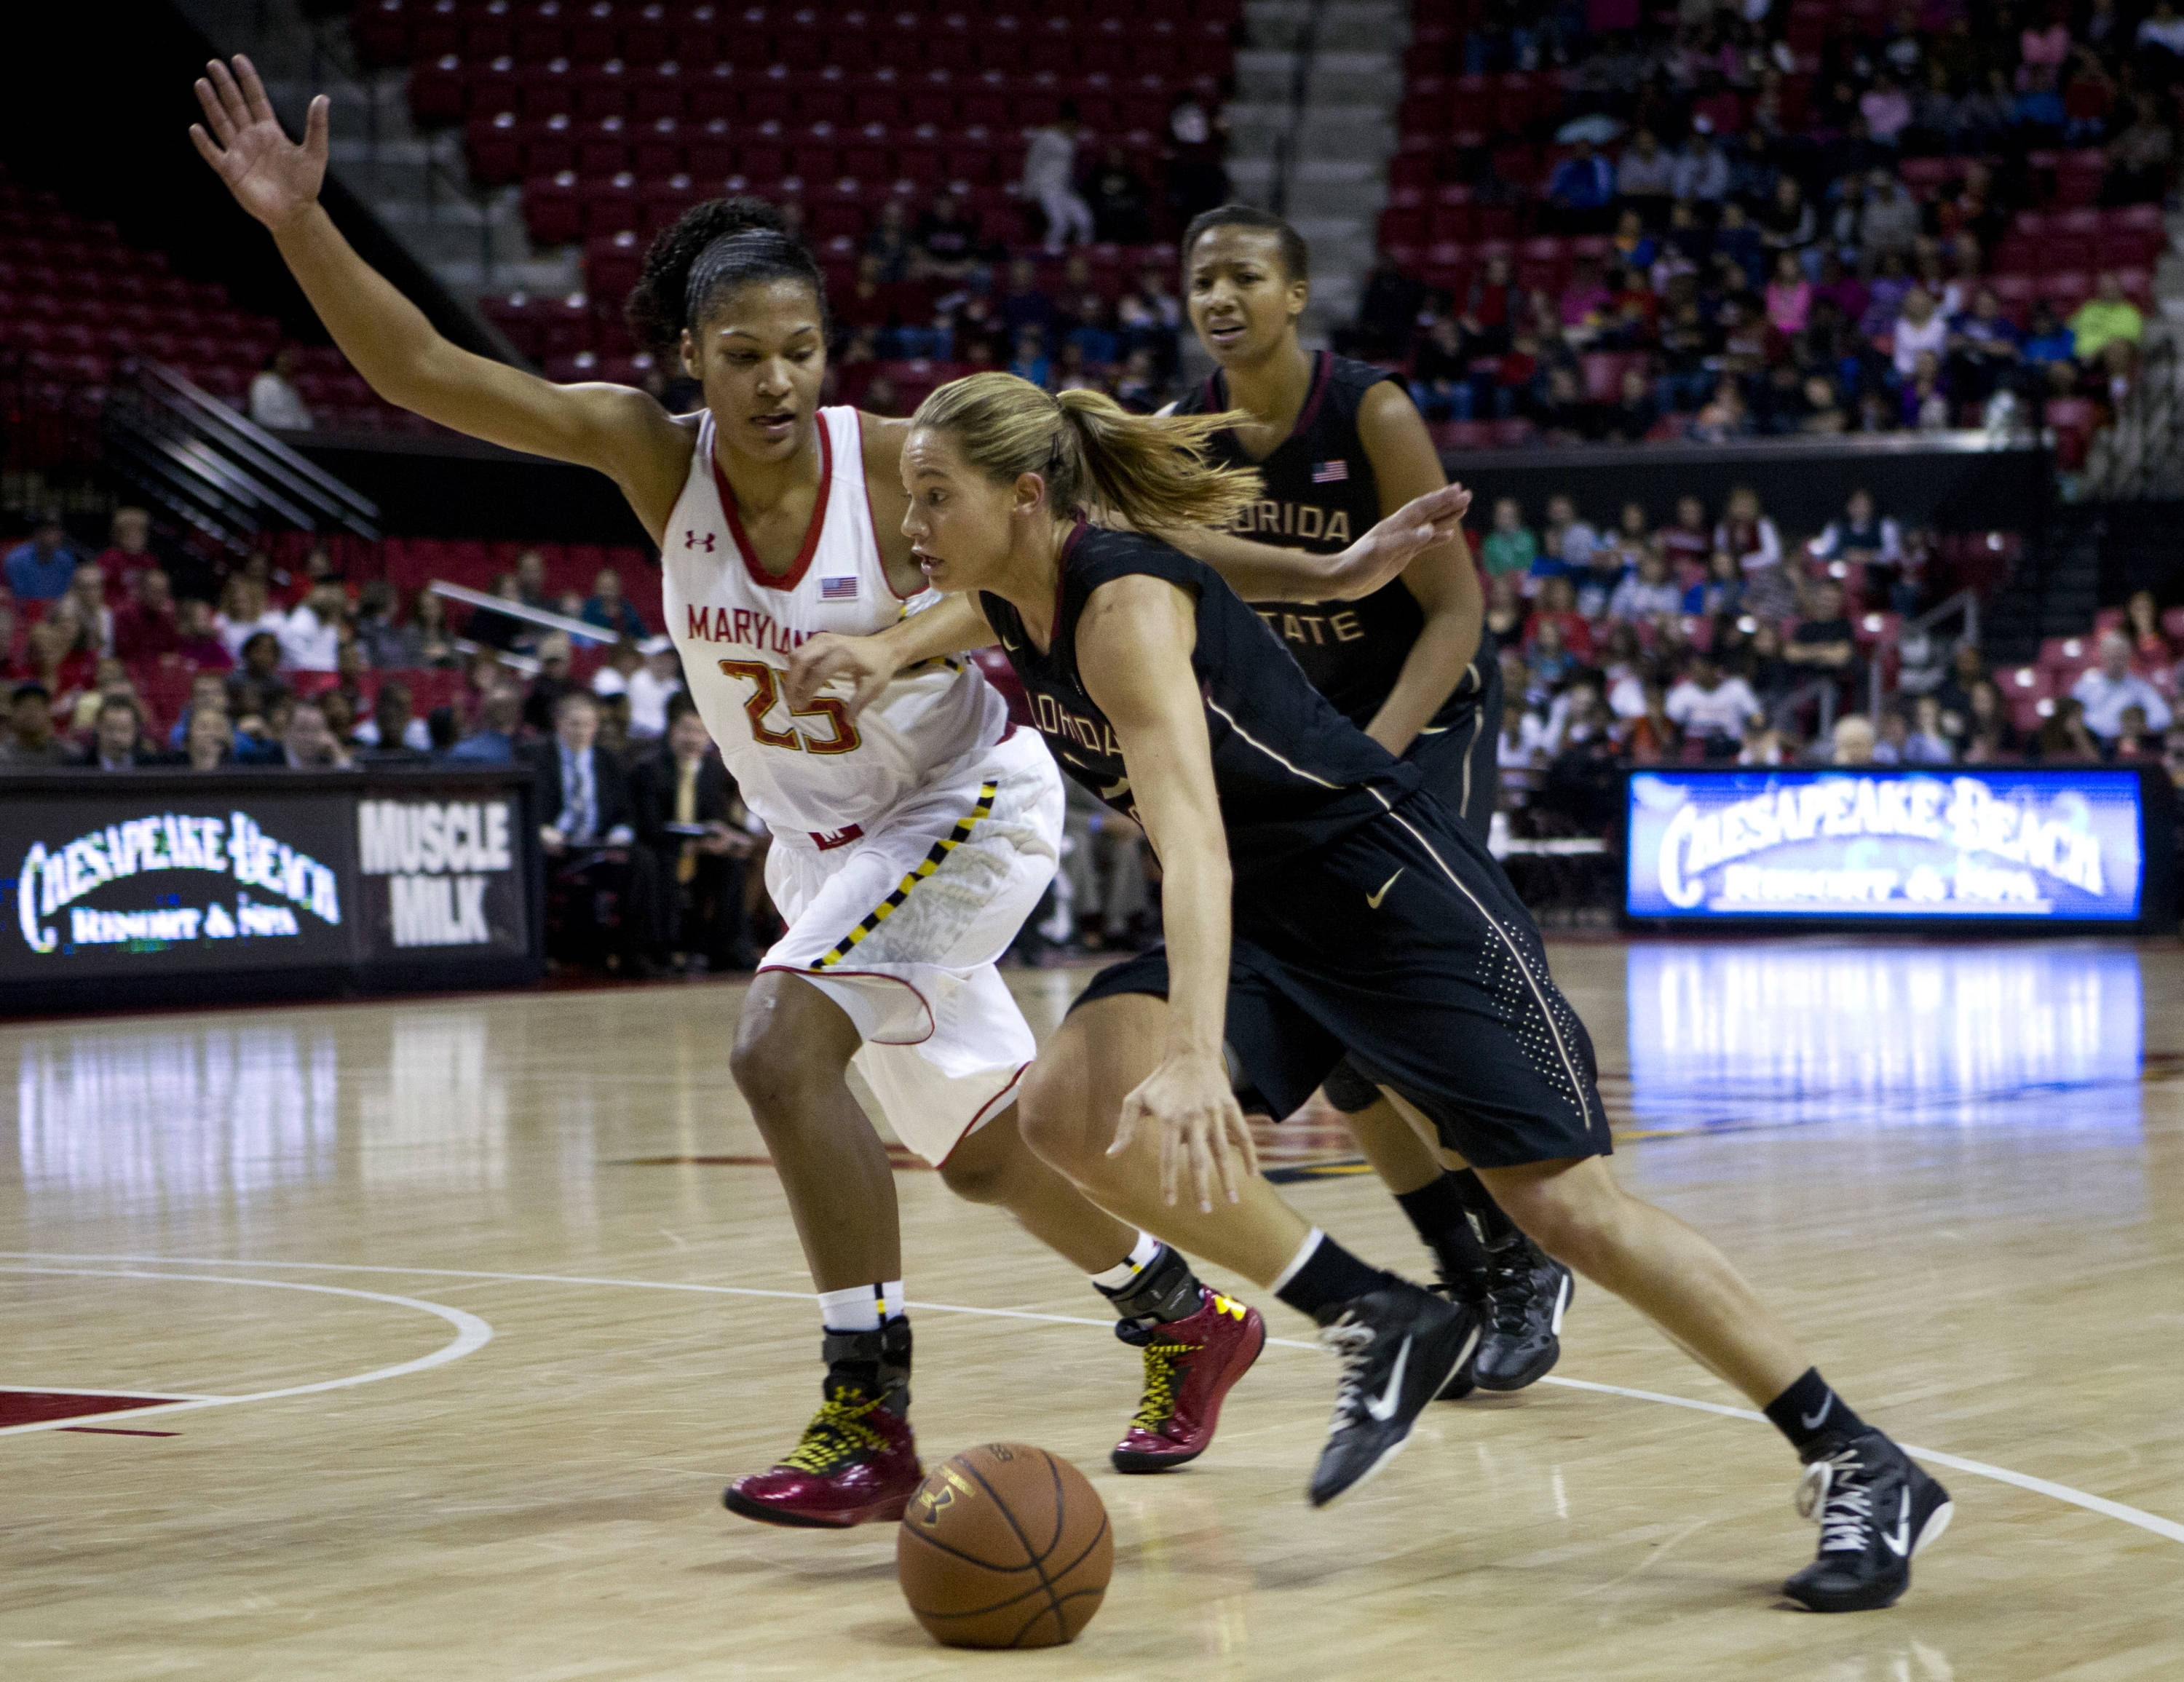 Florida State's Alexa Deluzio (3) moves the ball against Maryland's Alyssa Thomas (25) during the first half. (AP Photo/Jose Luis Magana)